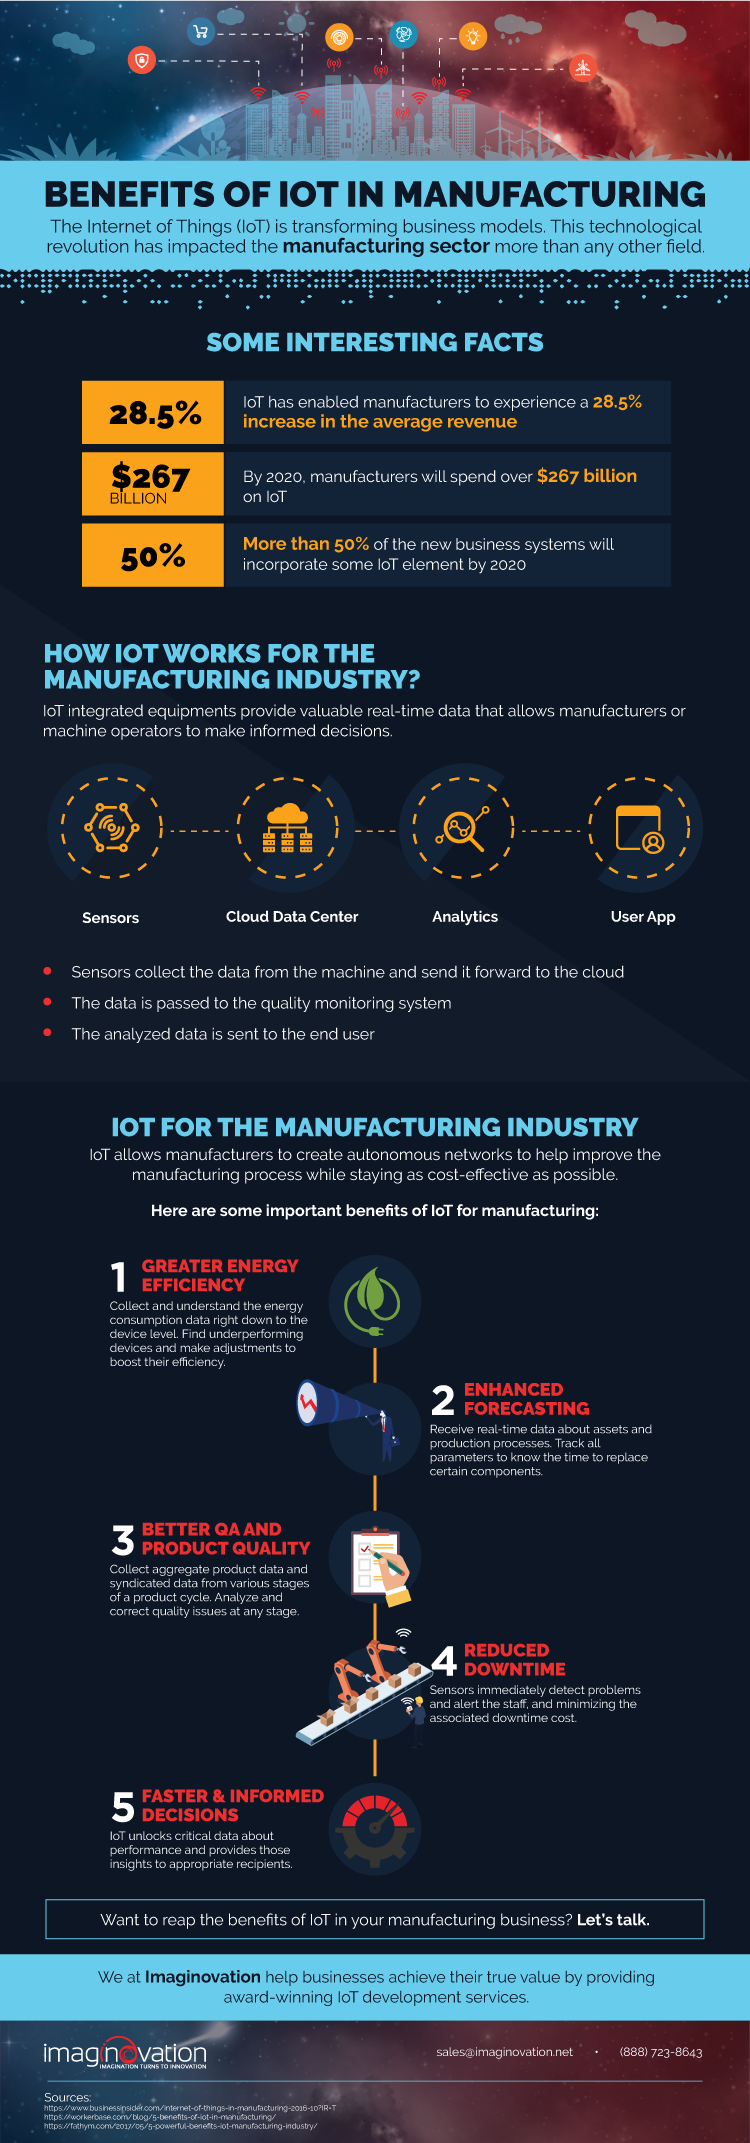 Benefits of IoT for Manufacturing